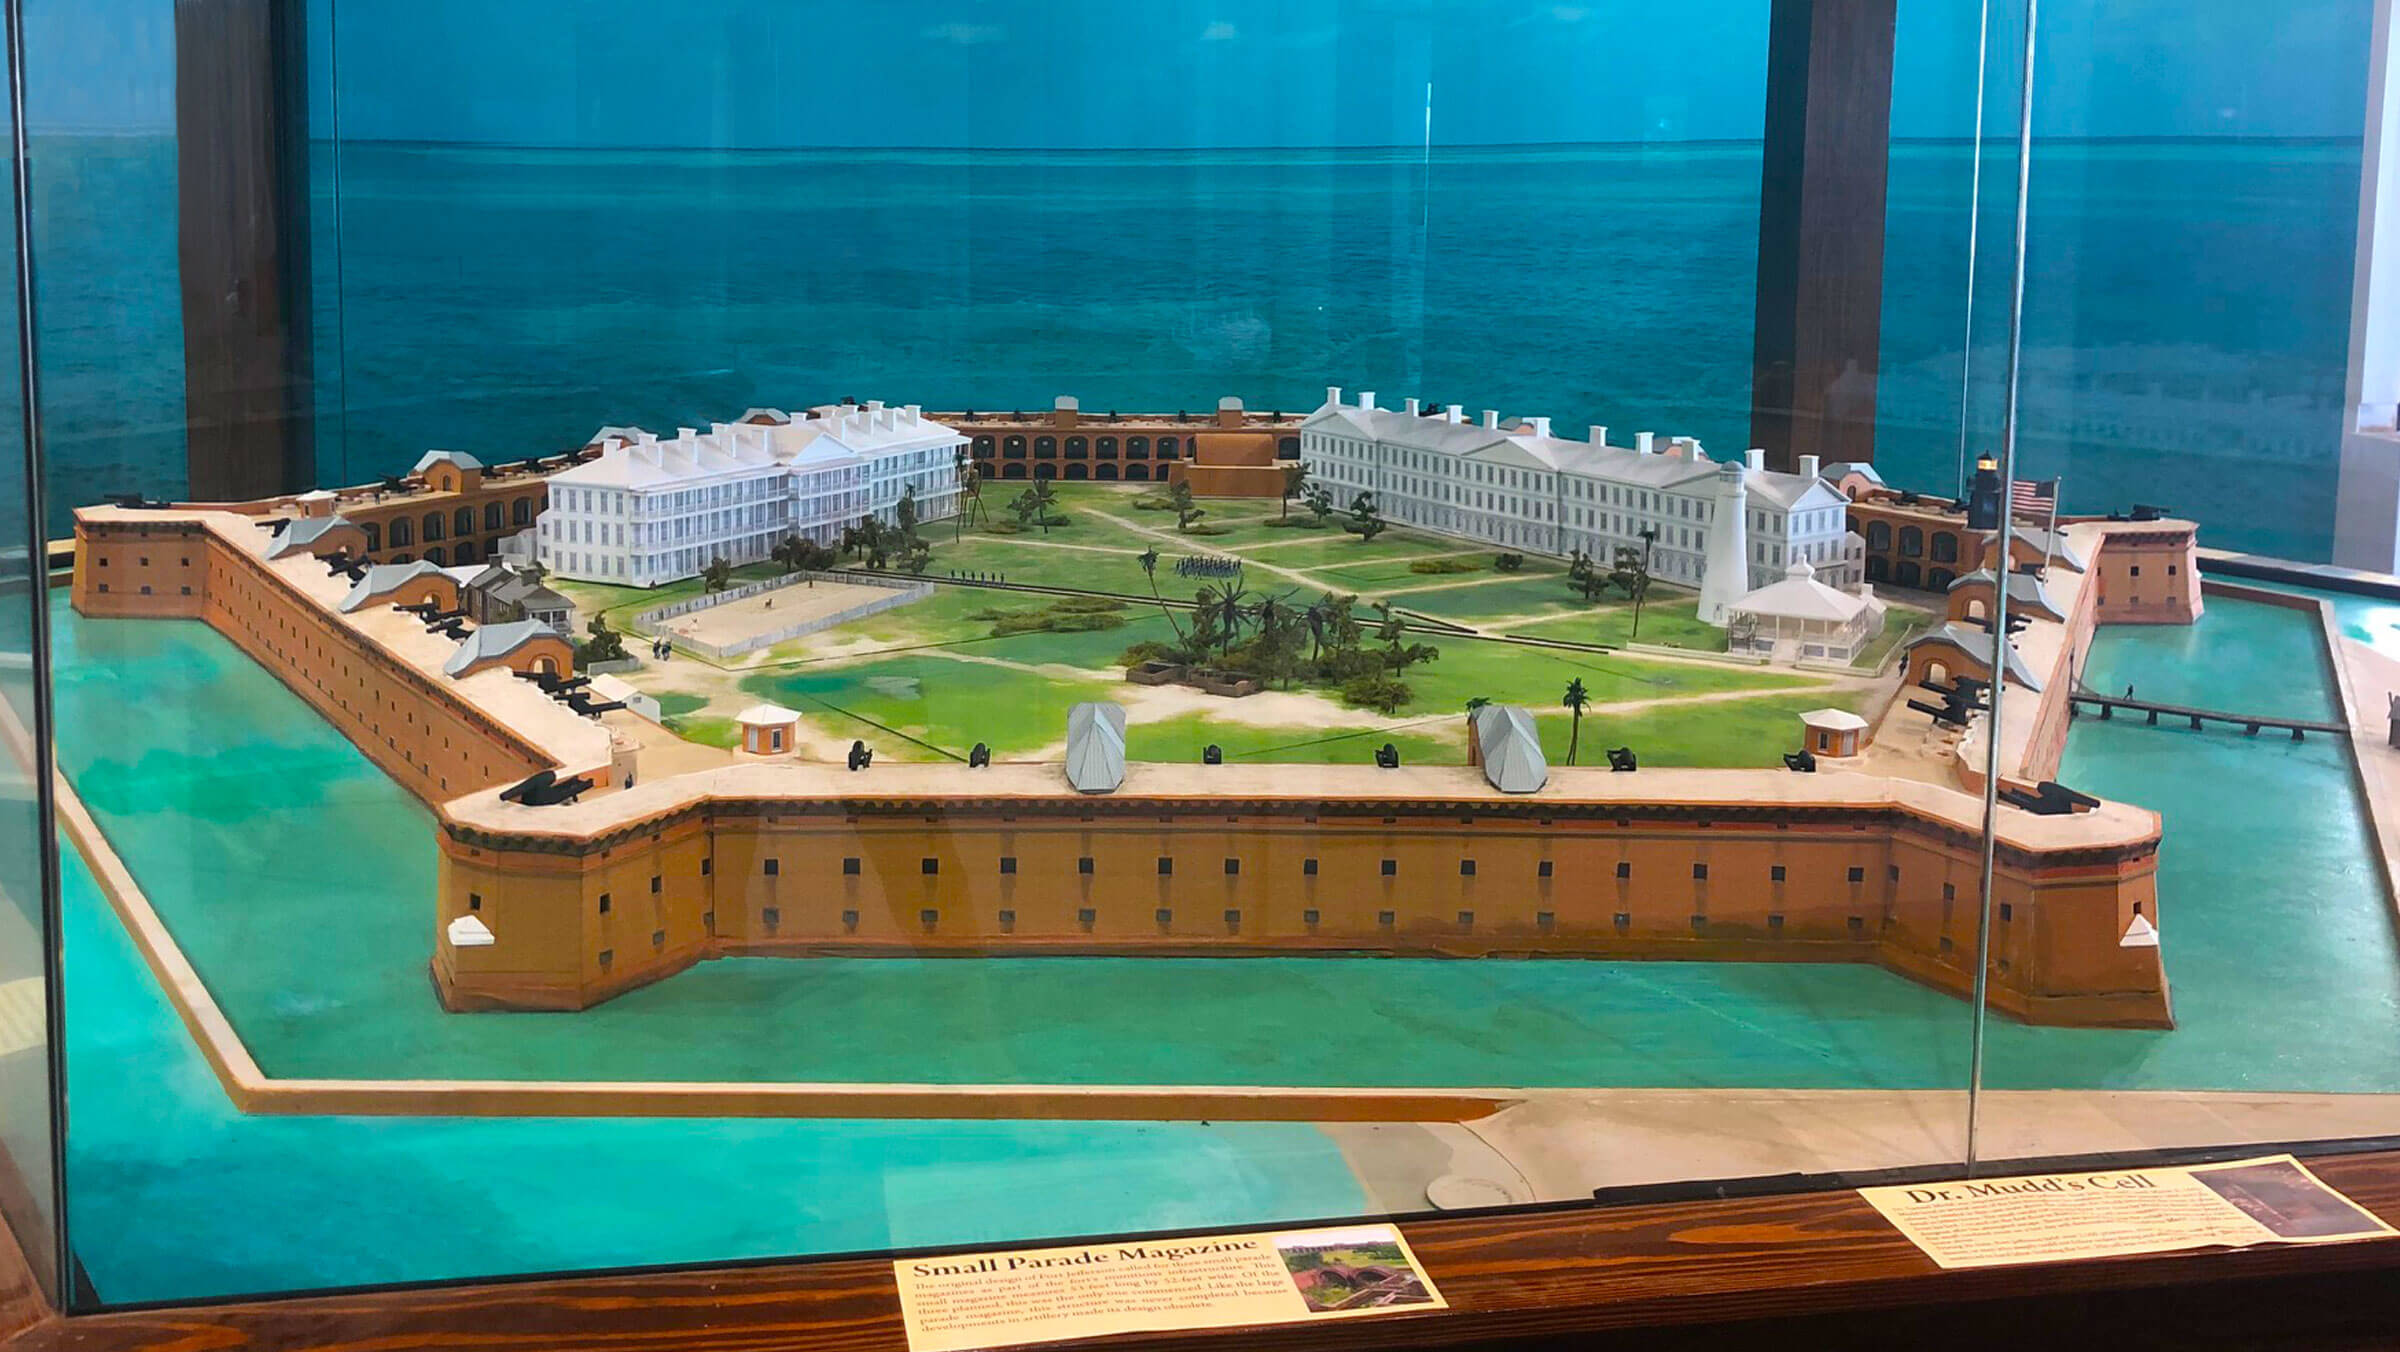 Photo of the Fort Jefferson 3D model on display at the Dry Tortugas Museum - Desktop Version